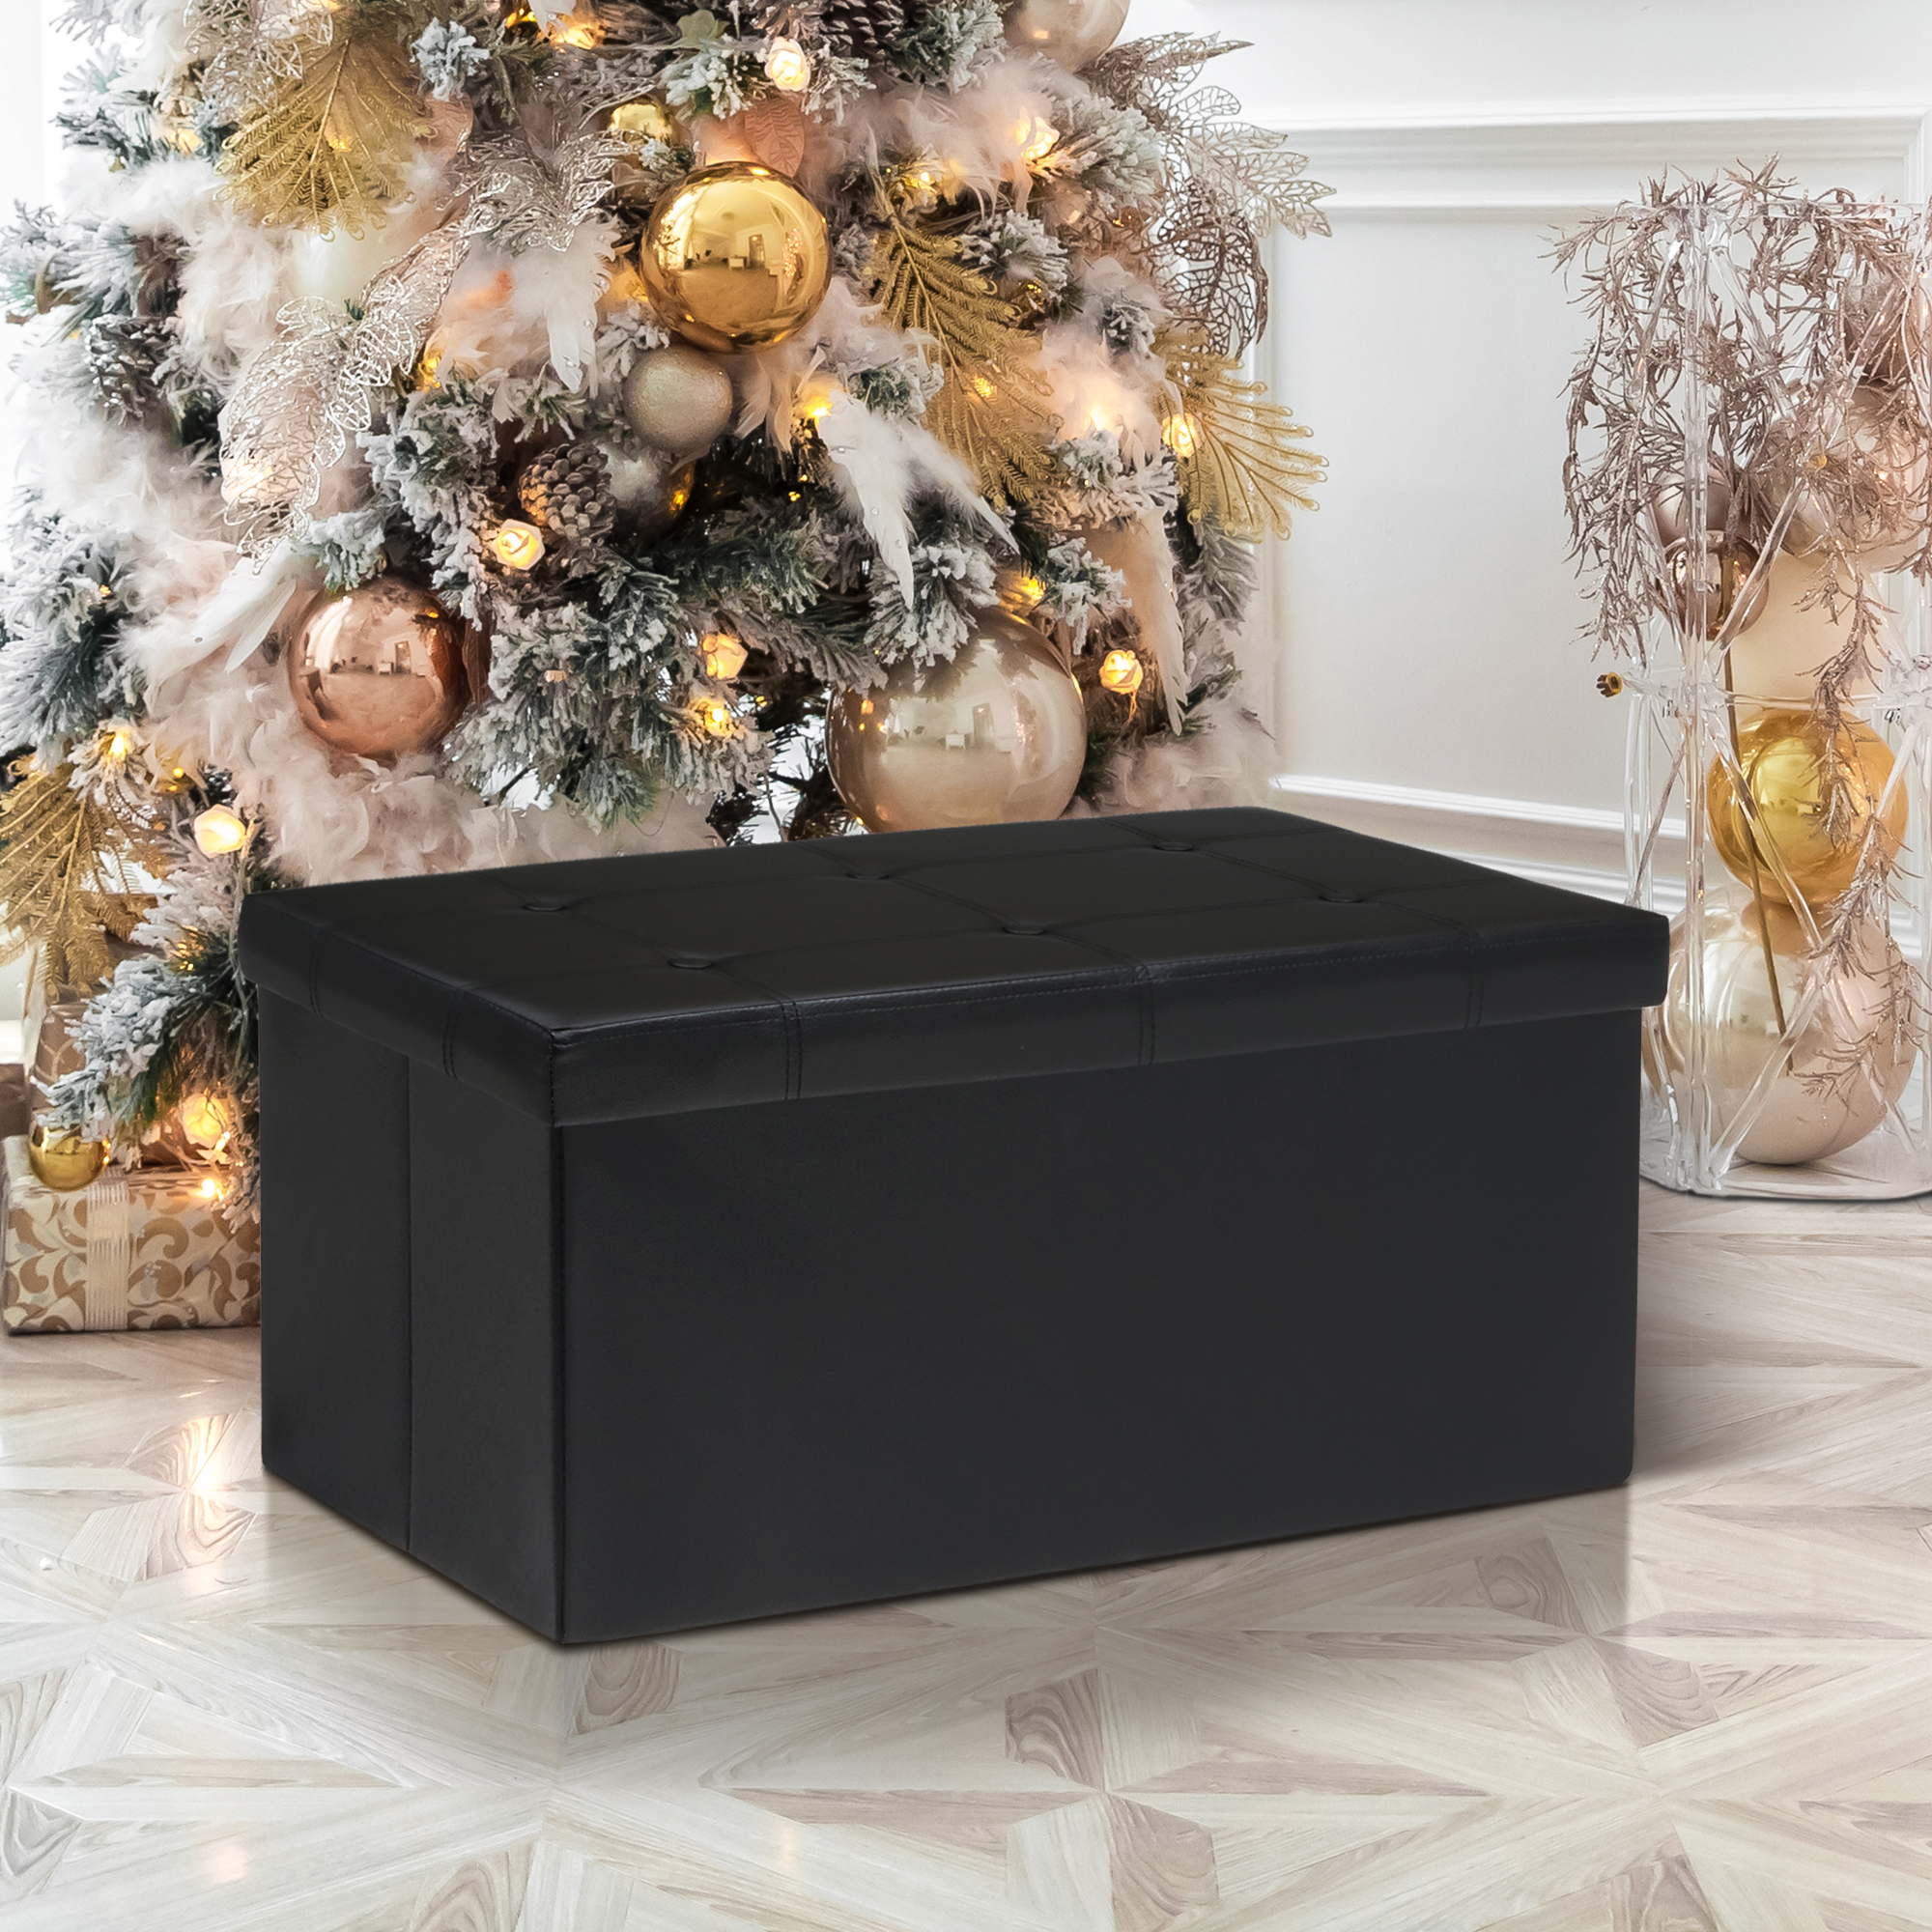 Otto & Ben 30 Inch Button Design Memory Foam Folding Storage Ottoman Bench with Faux Leather